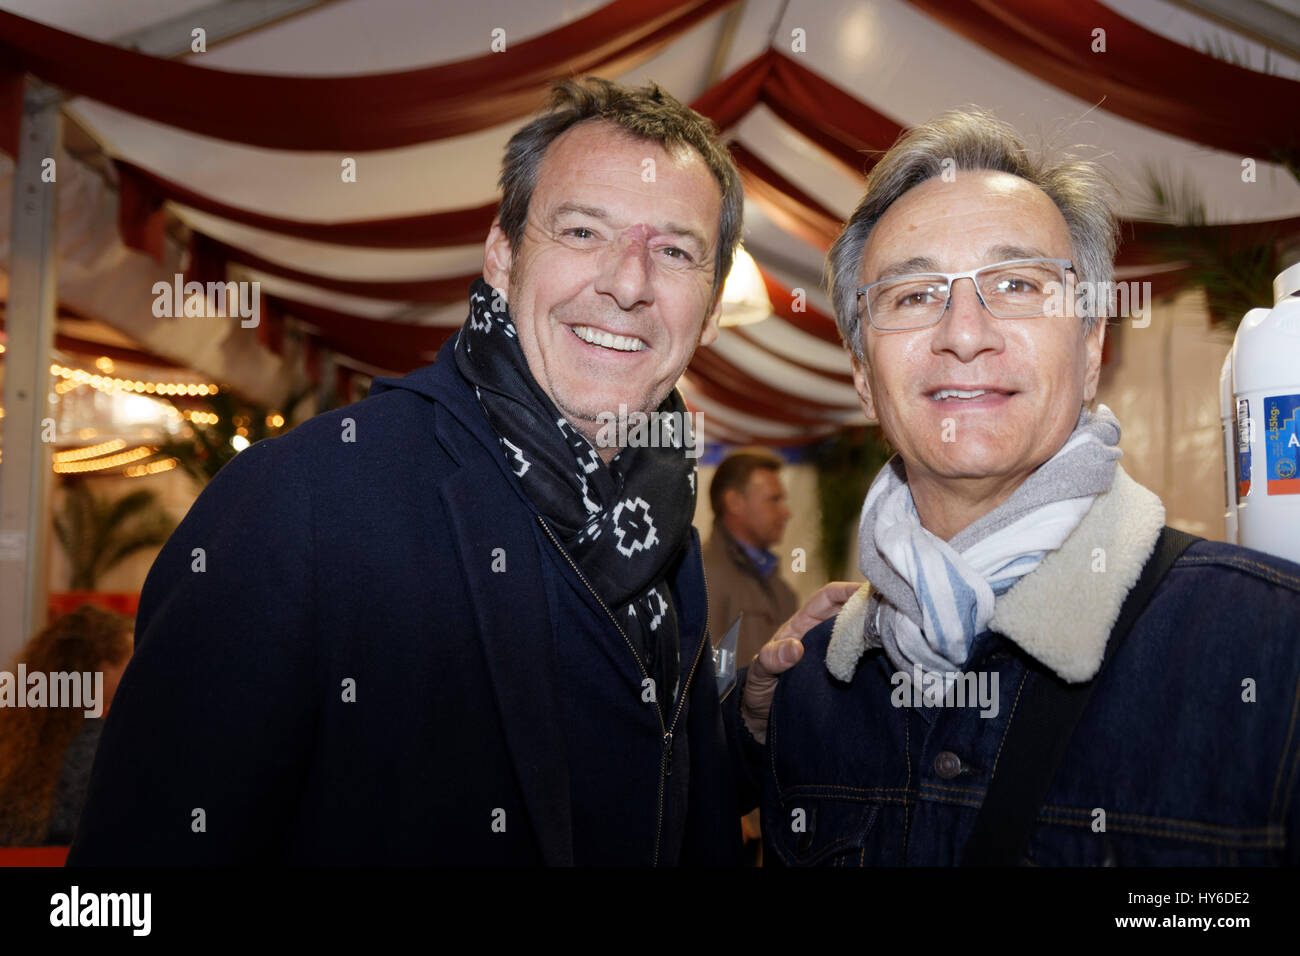 Jean-Luc Reichmann and Laurent Petitguillaume  attend at Opening evening of the Throne Fair for the benefit of the Stock Photo